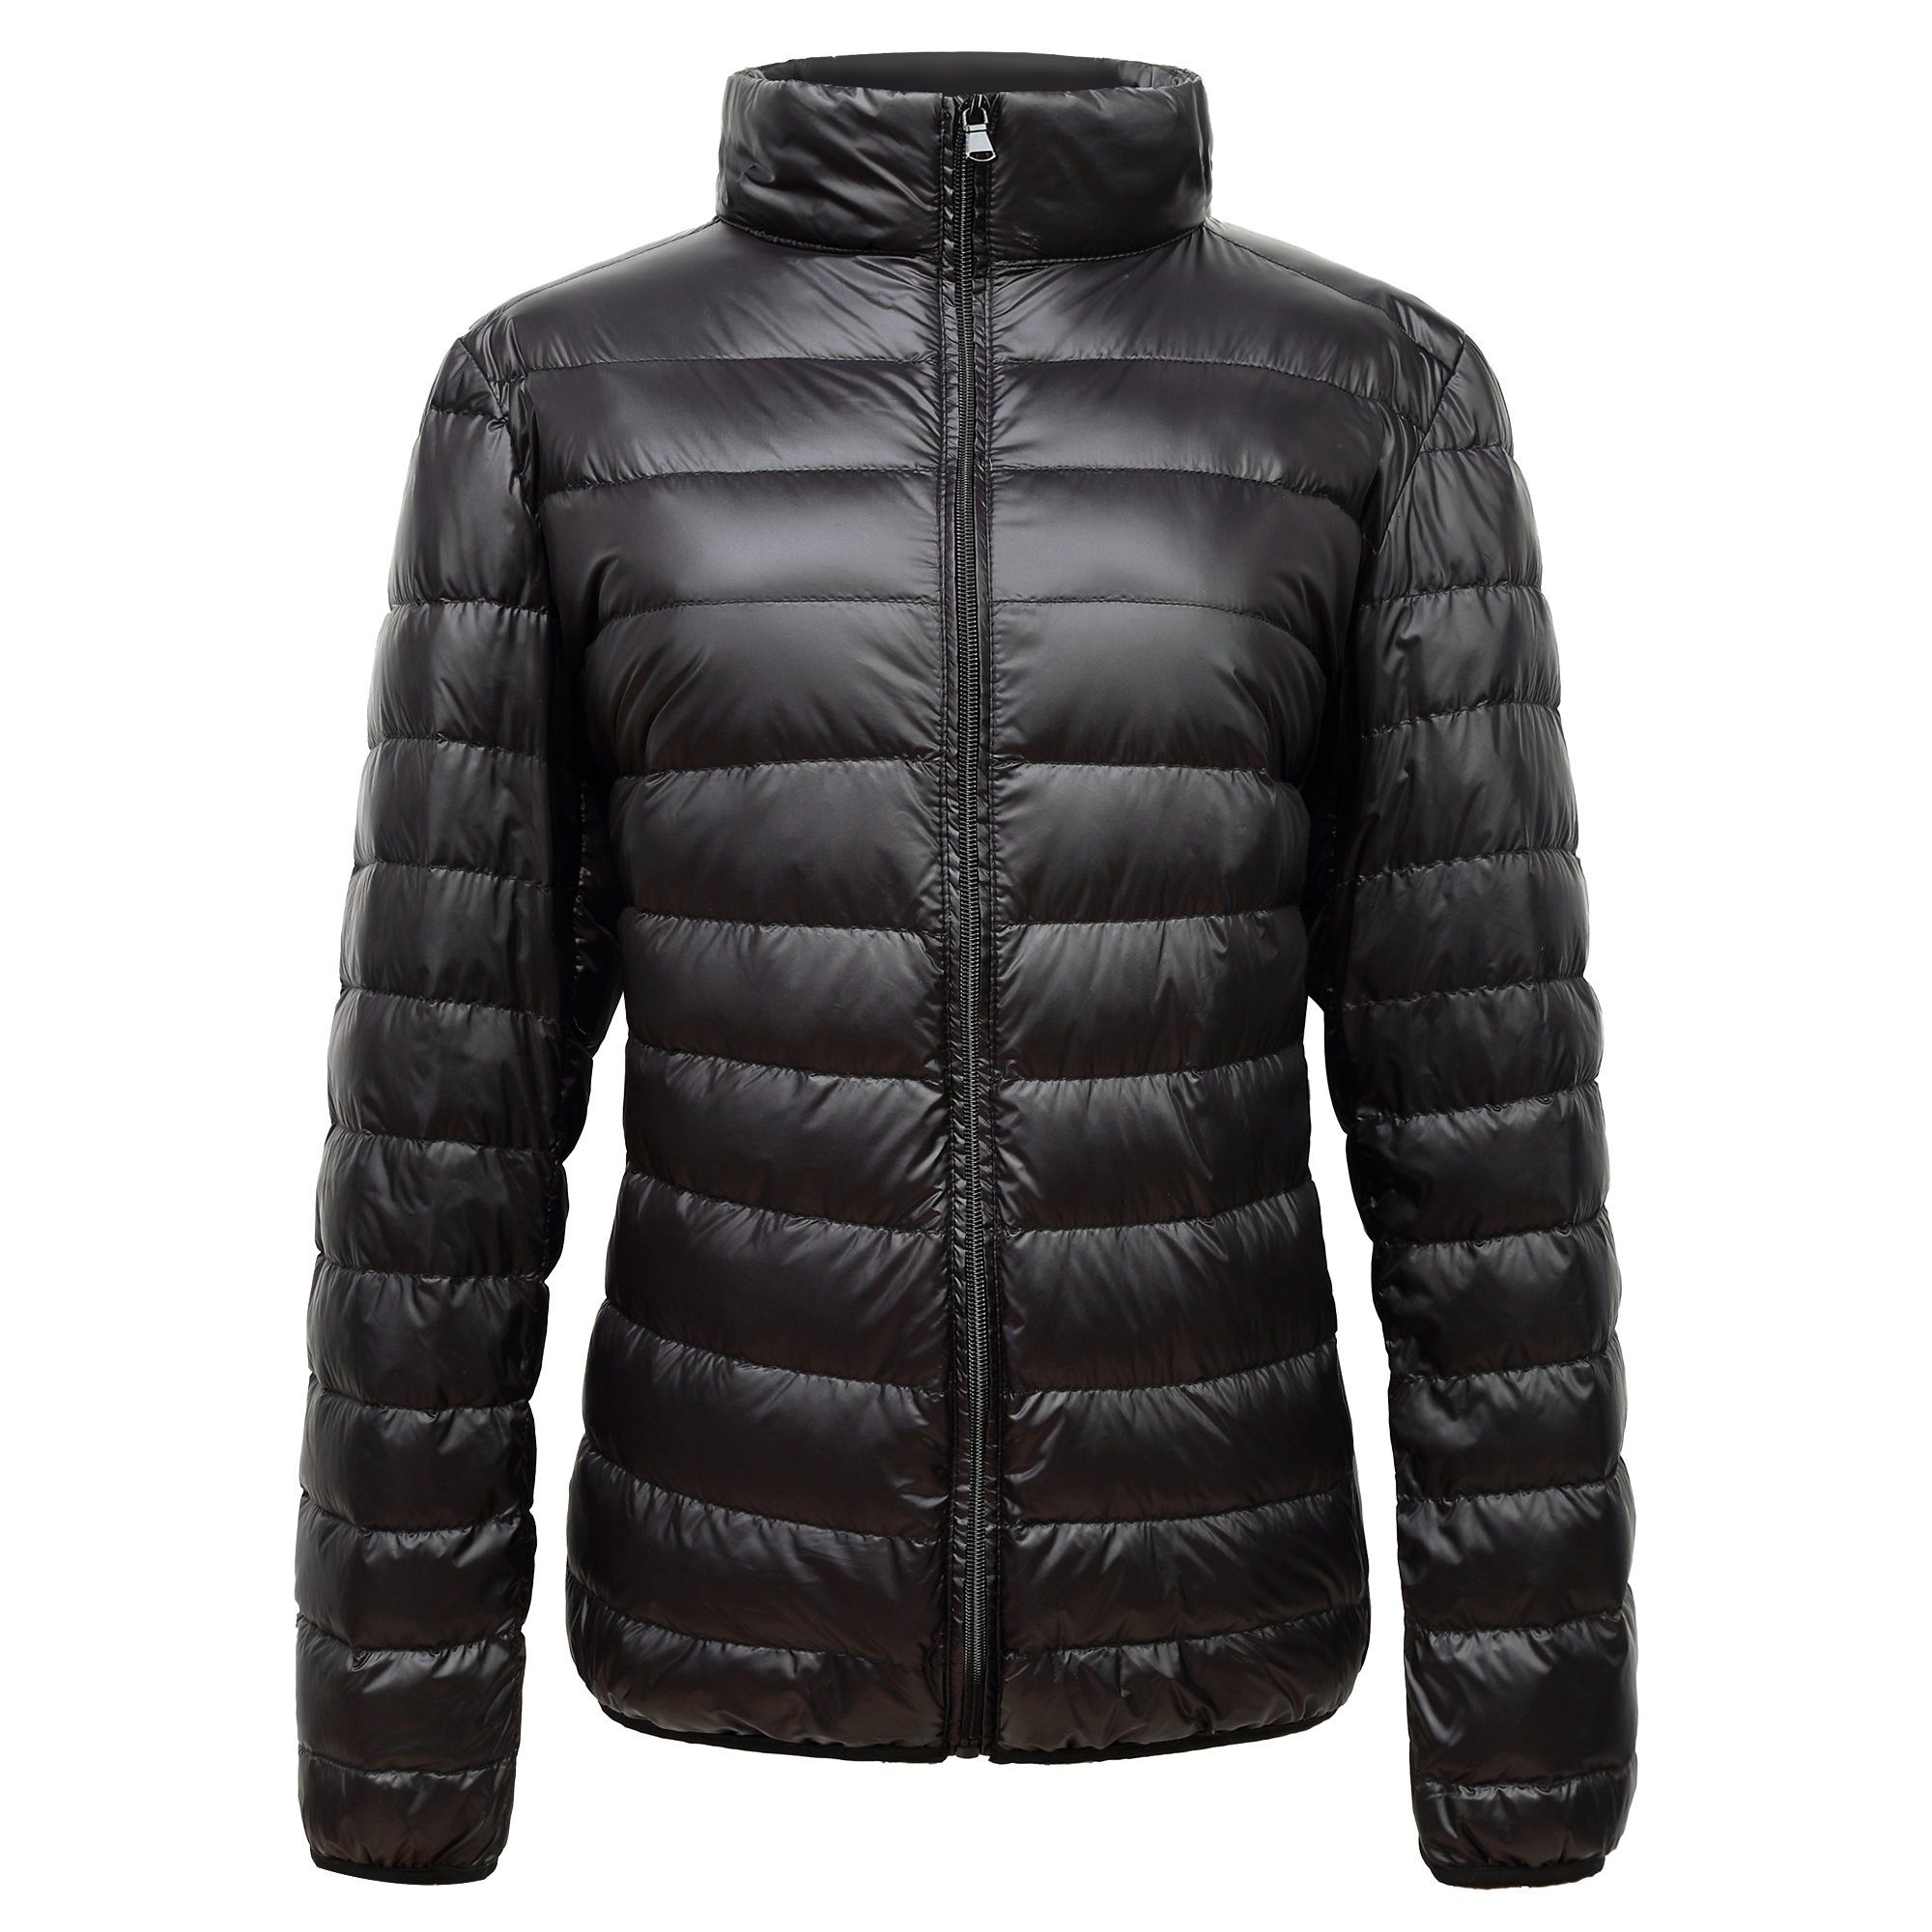 TSC Wearable Men's Ultra Light Down Jacket, Fashion Light Weight Yet Warm Down Jacket, Water Resistant, Compact For Travel, All Season Wear (XL, Black)